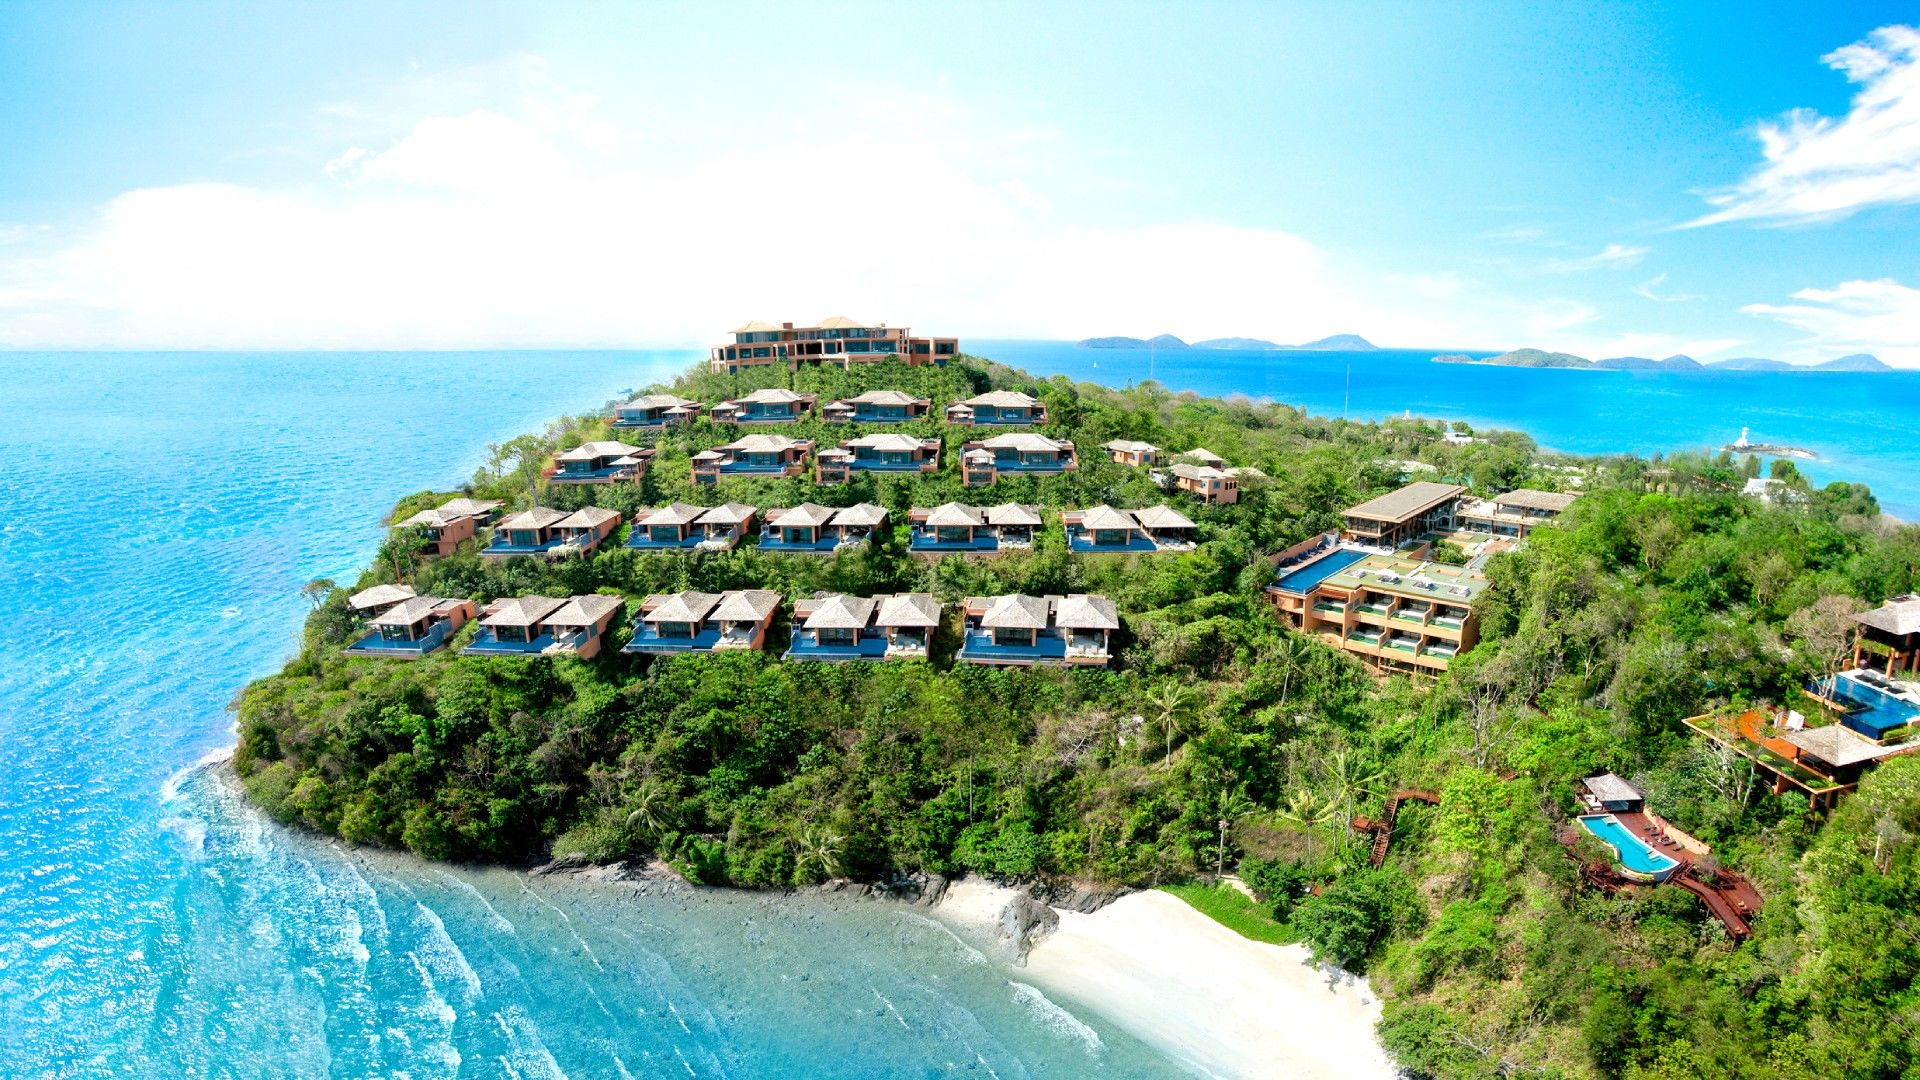 Phuket's Sri Panwa Resort's land title deed to be investigated for legality by DSI | News by Thaiger